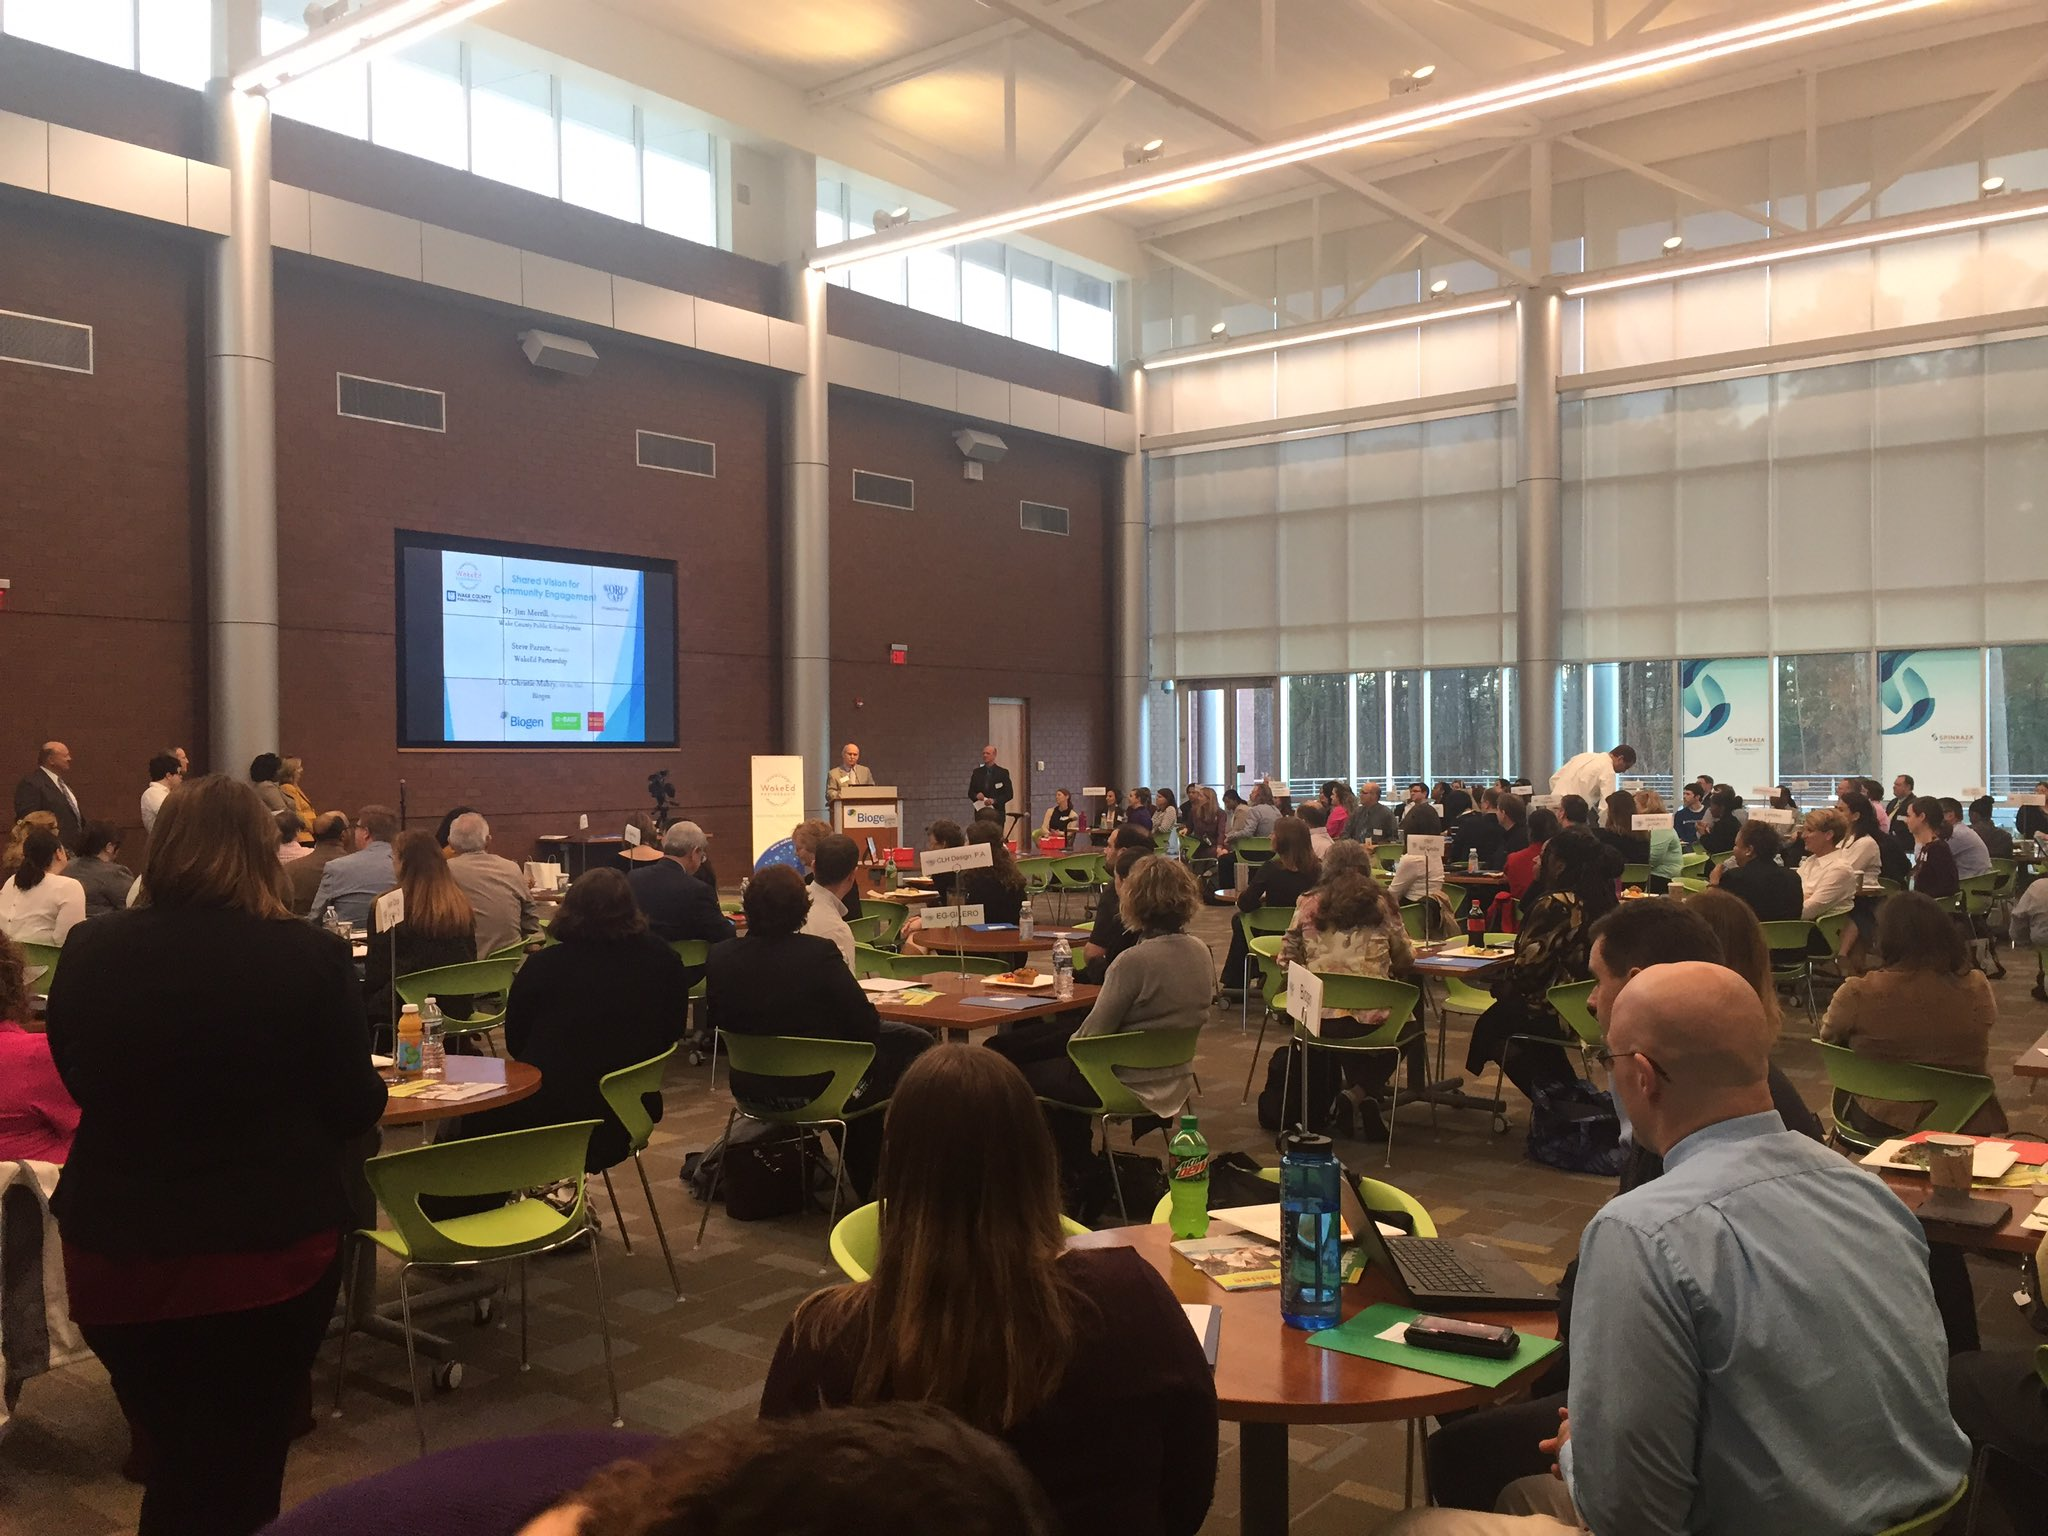 .@JamesMerrill13 addressing the business community to kickoff 5th annual #WakeEdWorldCafe Amazing collaborative effort to partner w/ schools https://t.co/wCisi8BFQ4